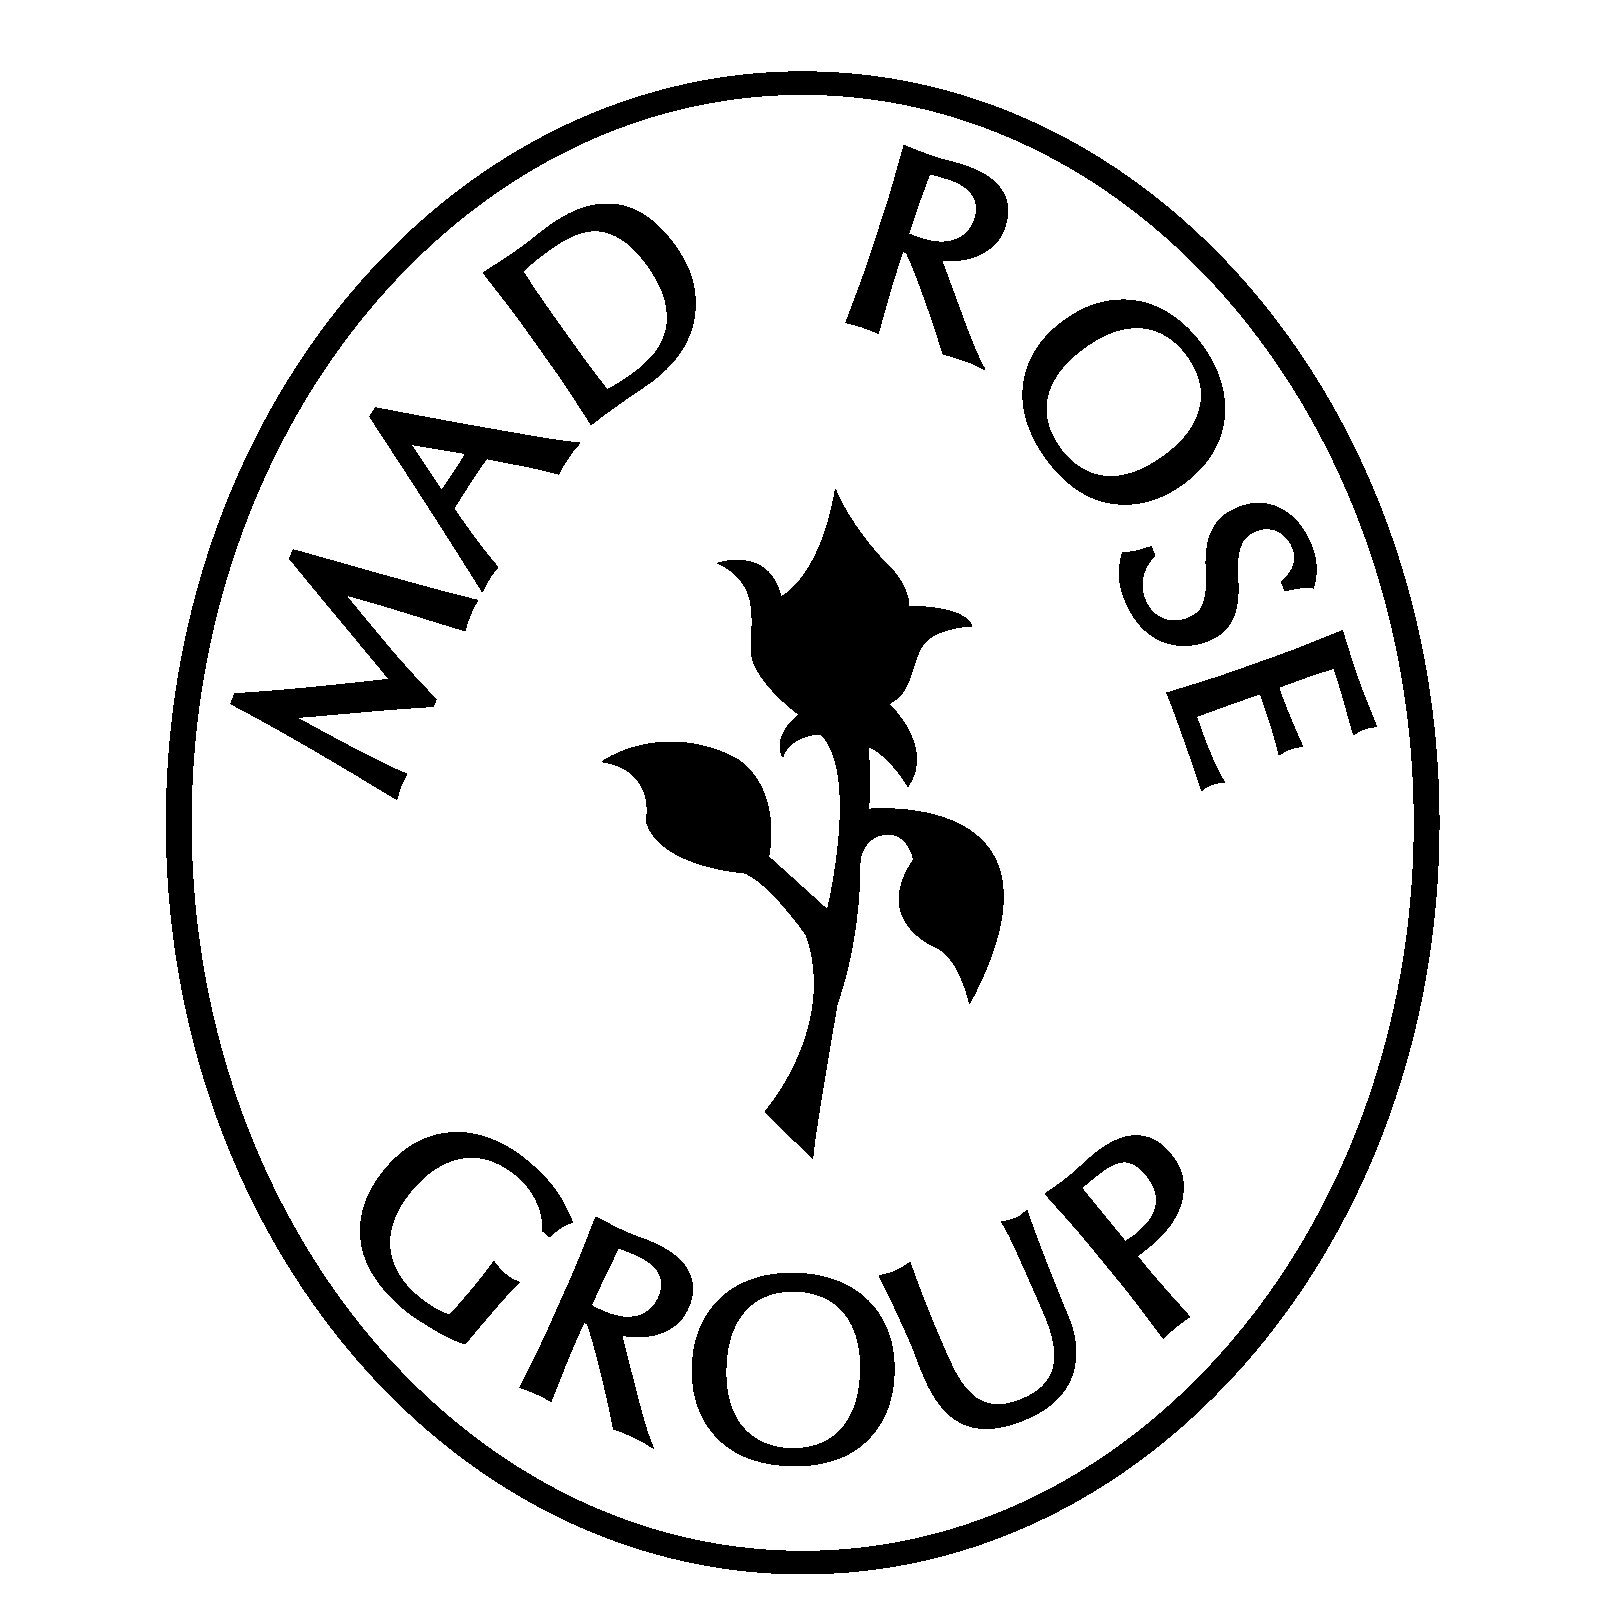 mad-rose-group---white-background.jpg